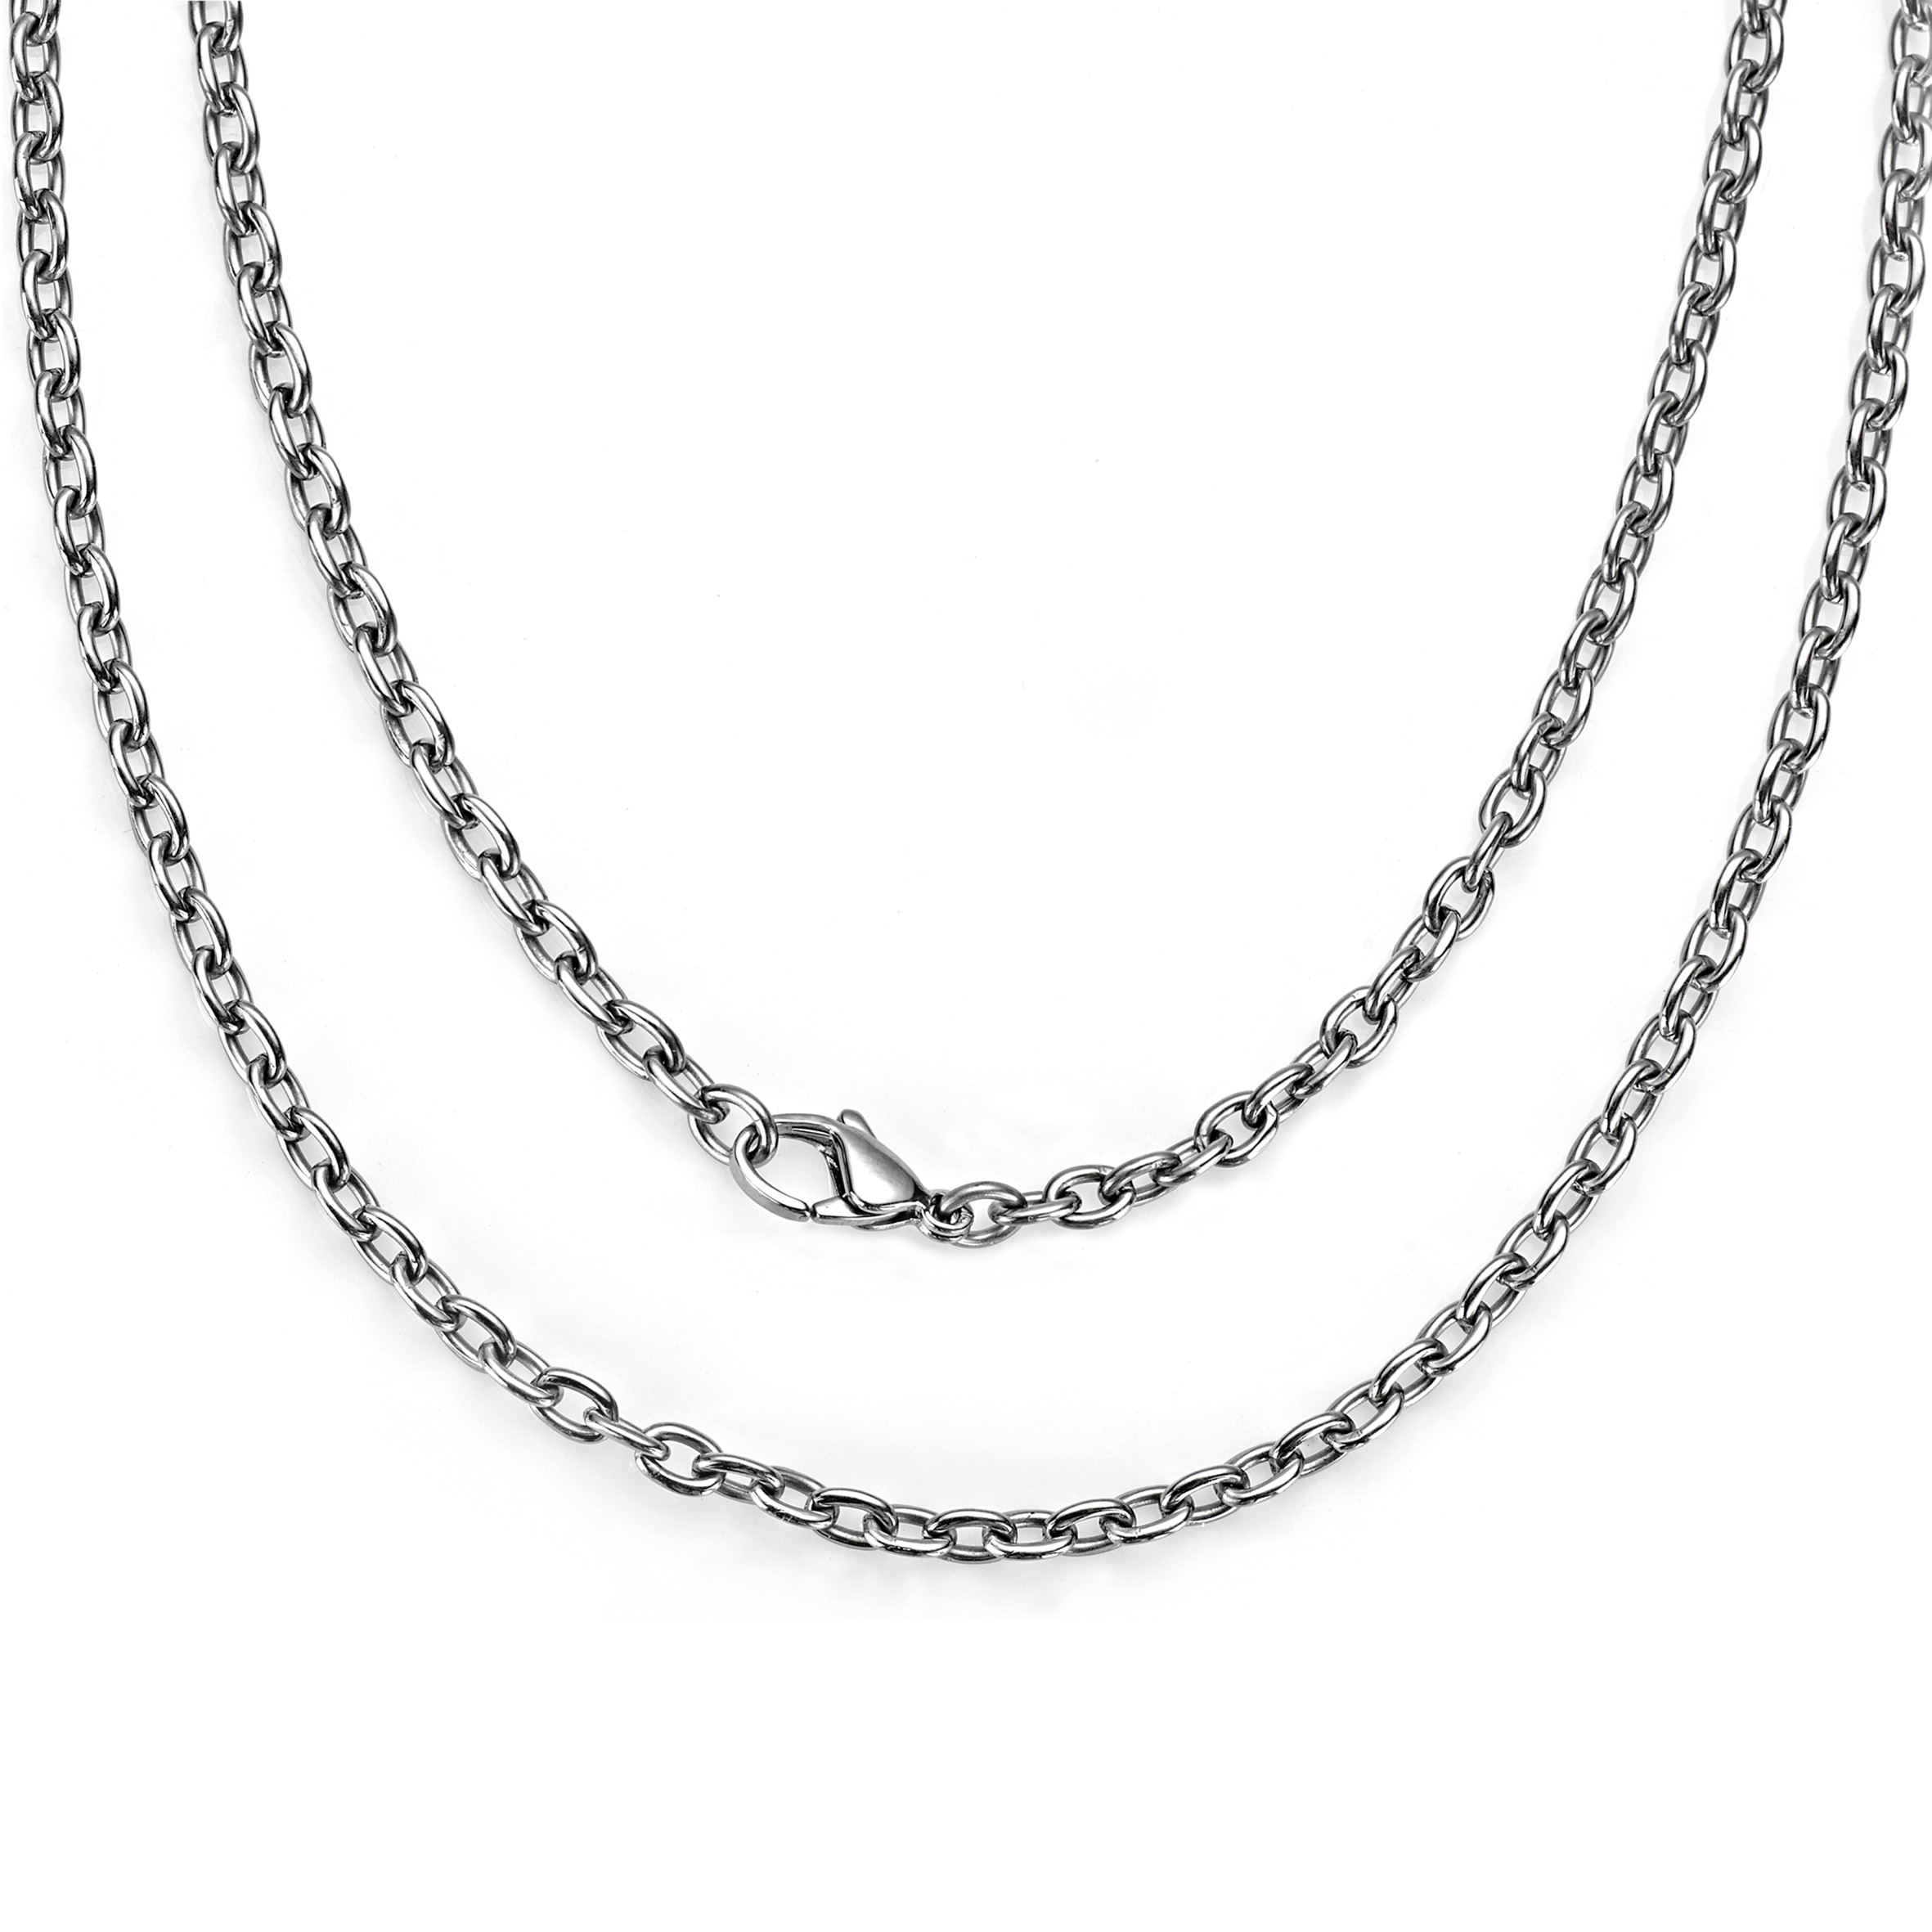 Small Silver Necklace with Solid Heart Pendant Stylish Costume Jewellery WN009